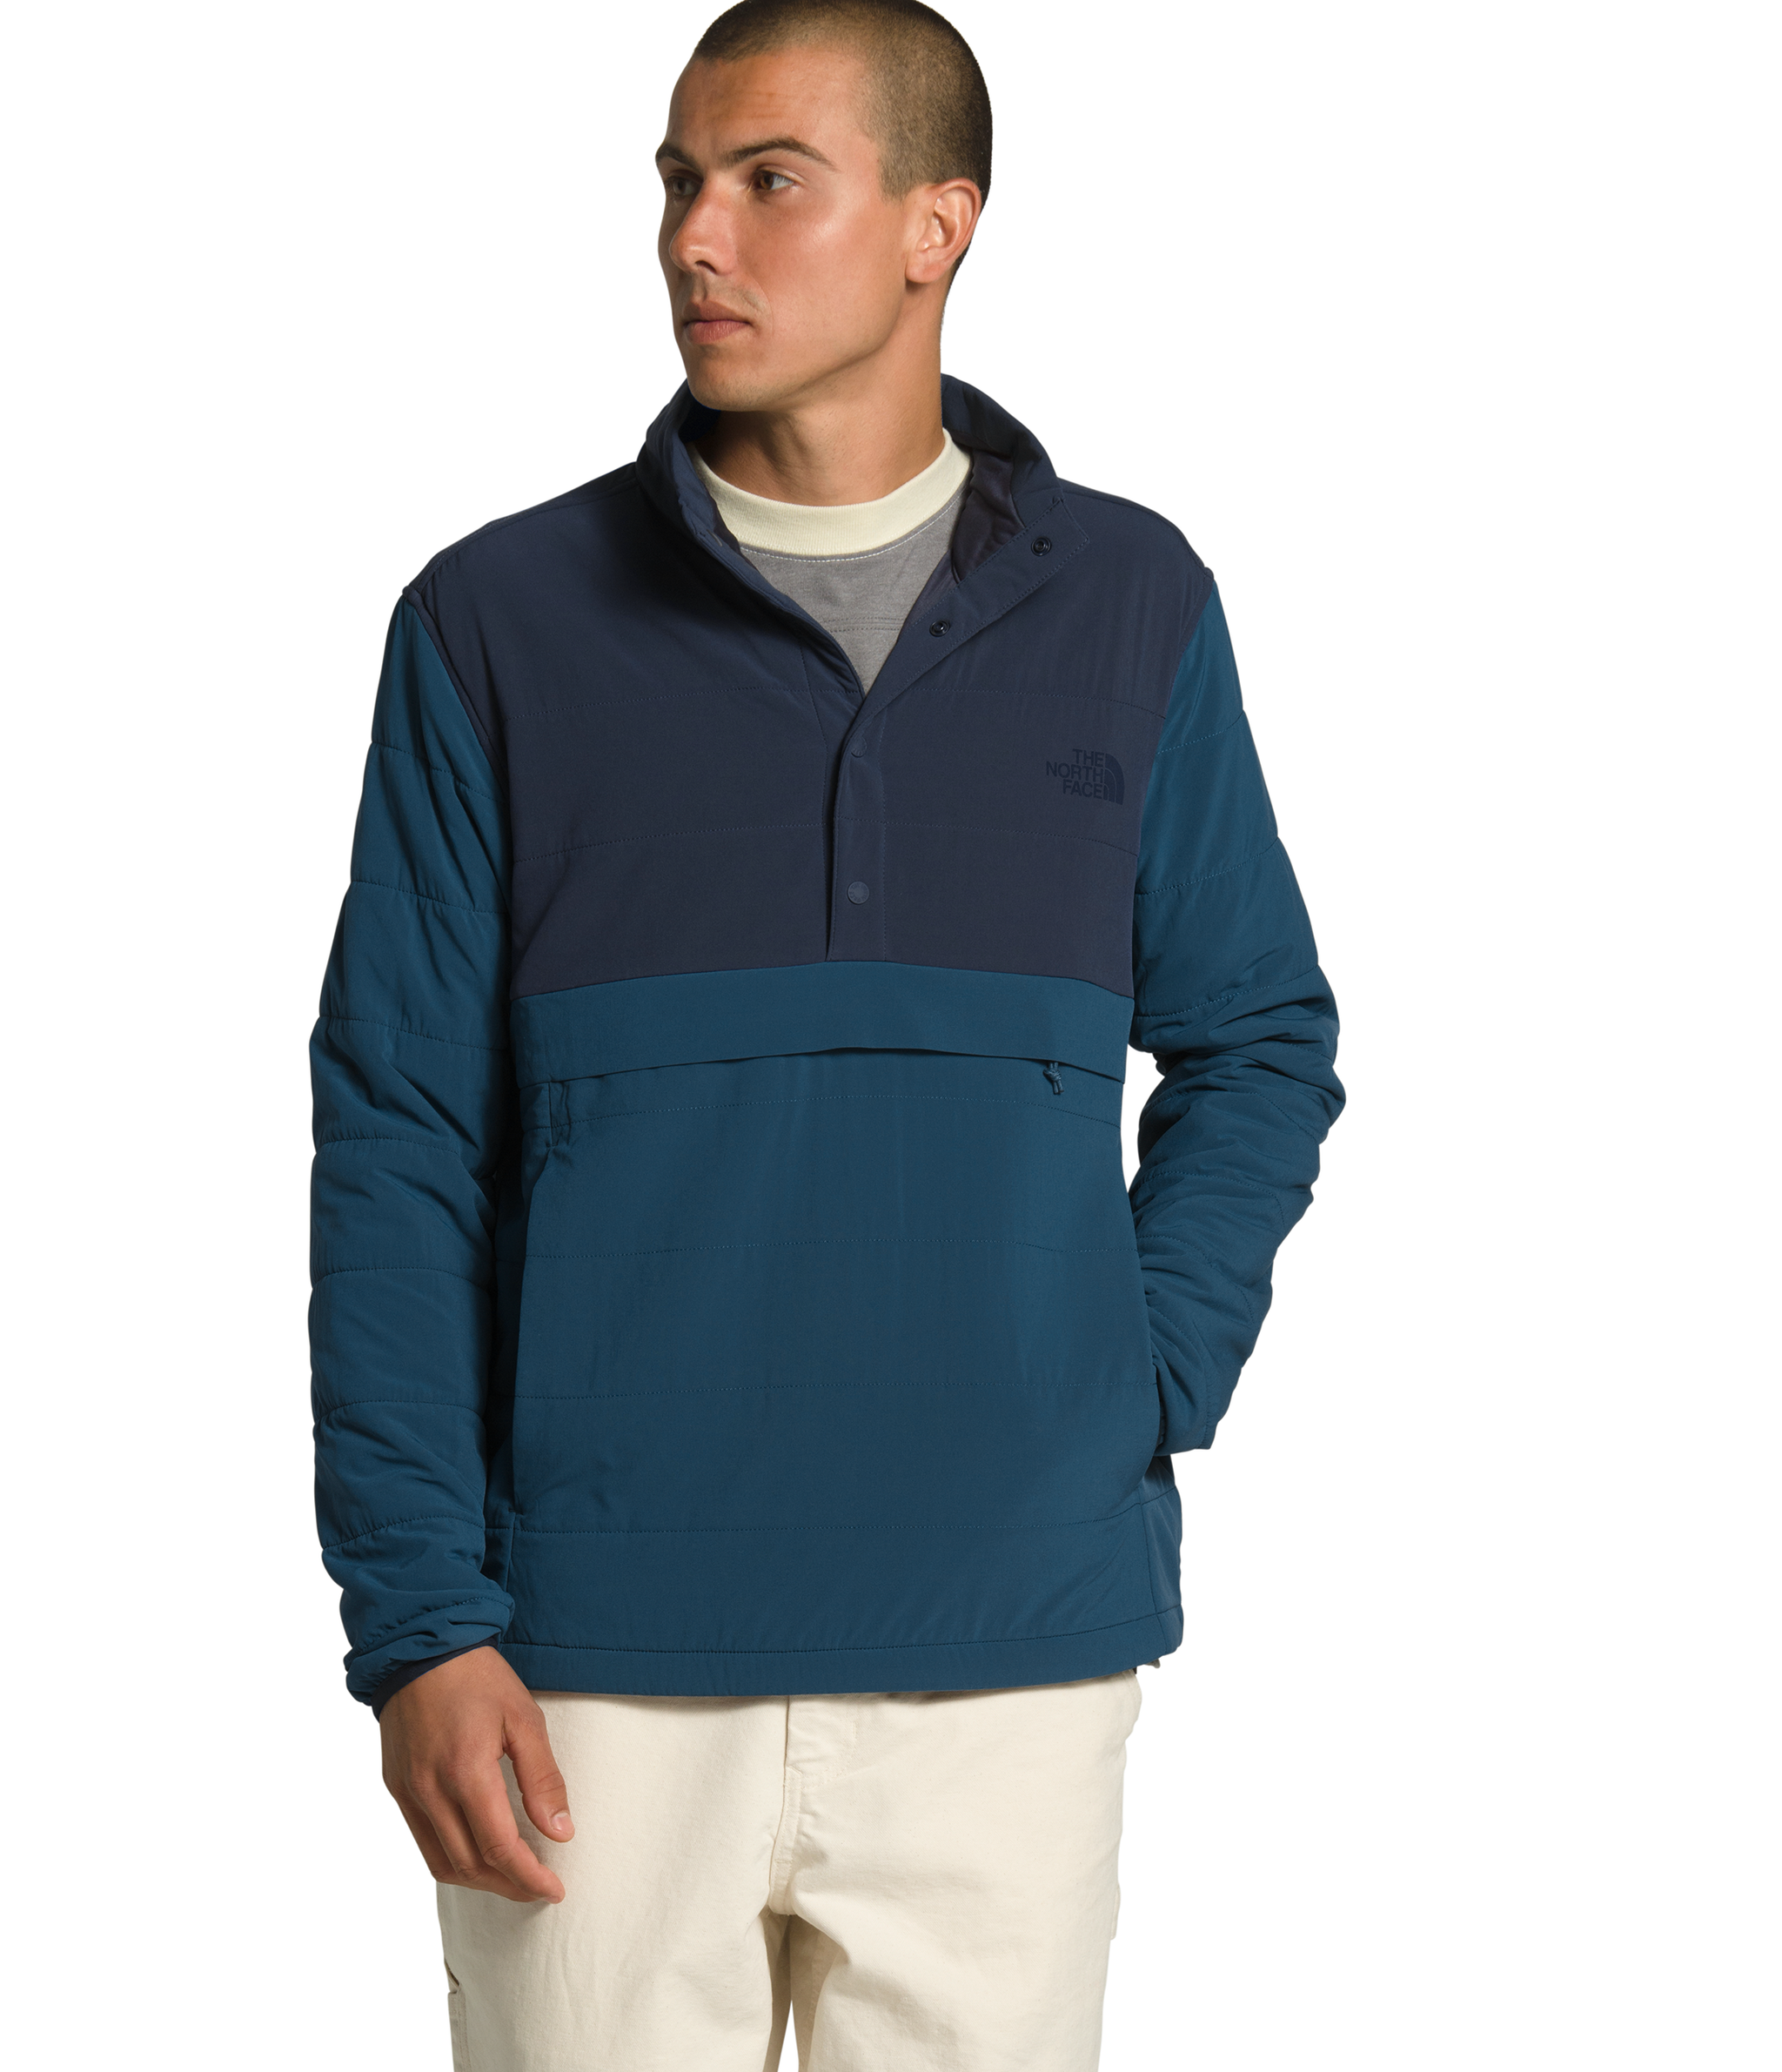 Mens Mountain Sweatshirt 3.0